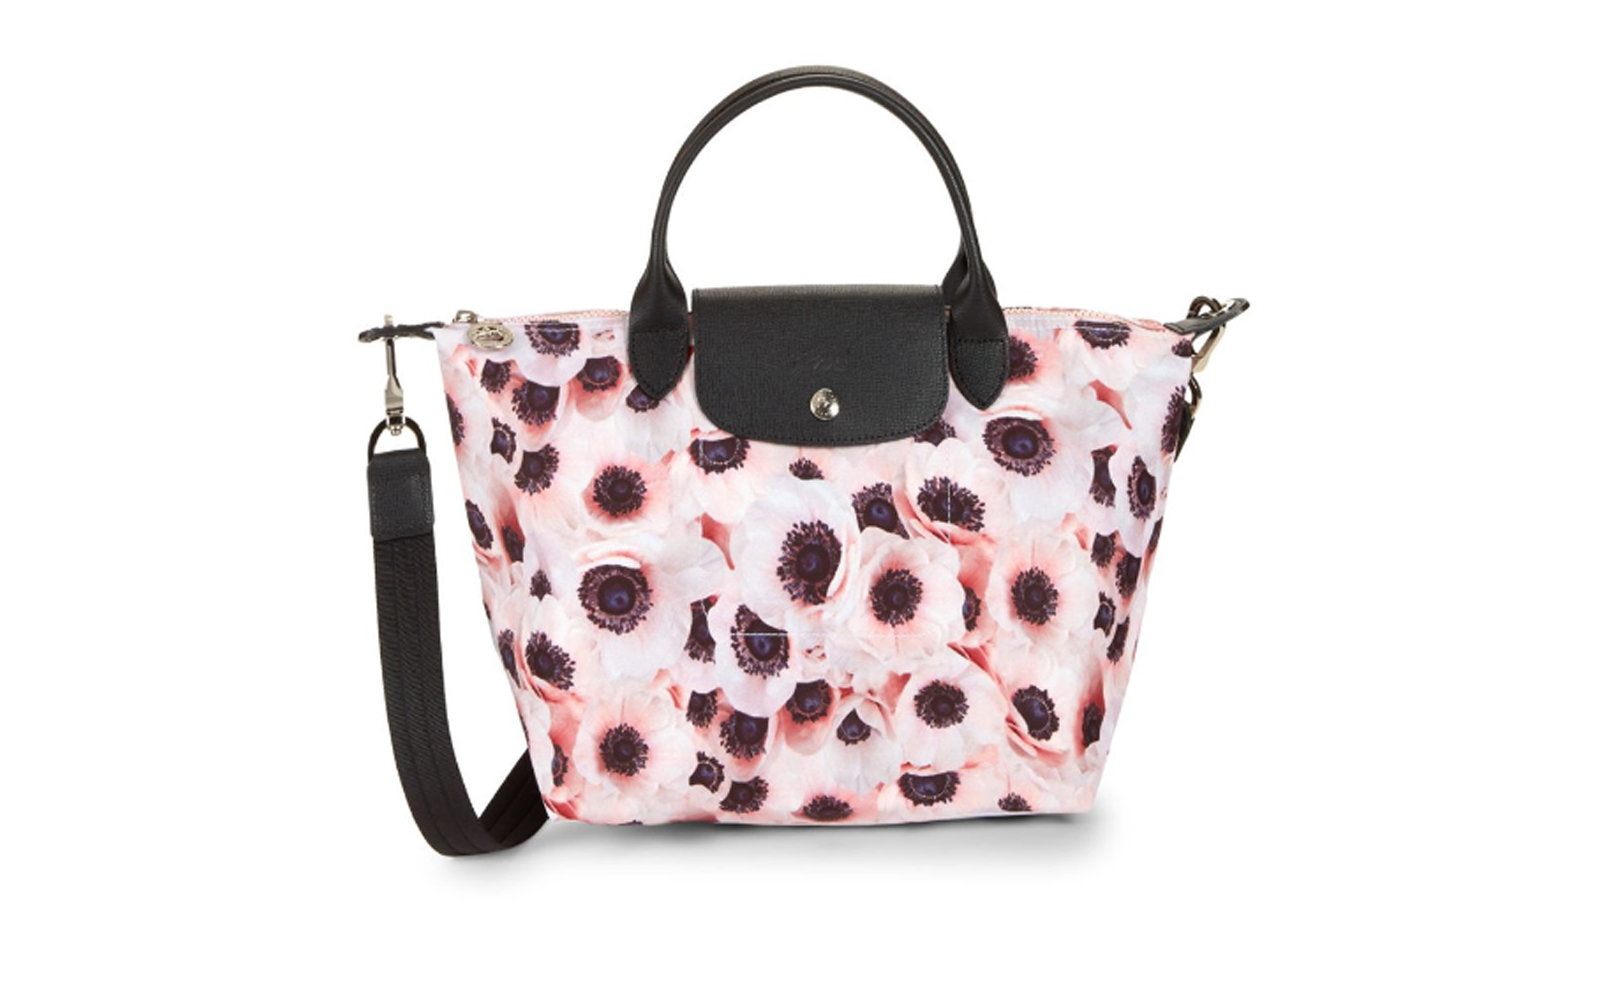 Longchamp Le Pliage Anemone Tote Bag